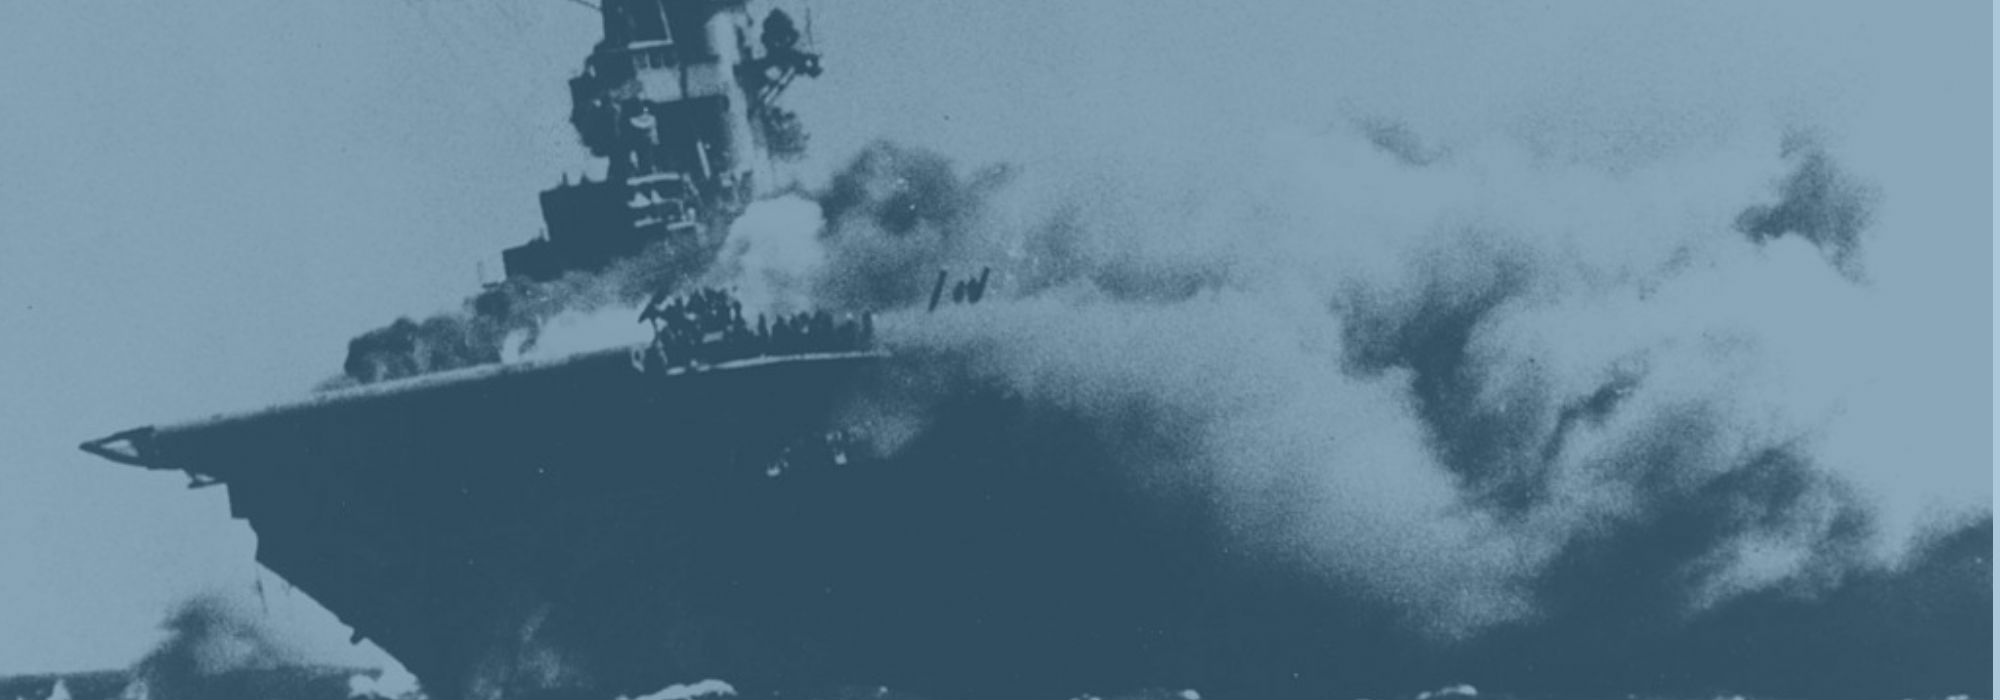 Guadalcanal: The Battle That Sealed the Pacific War